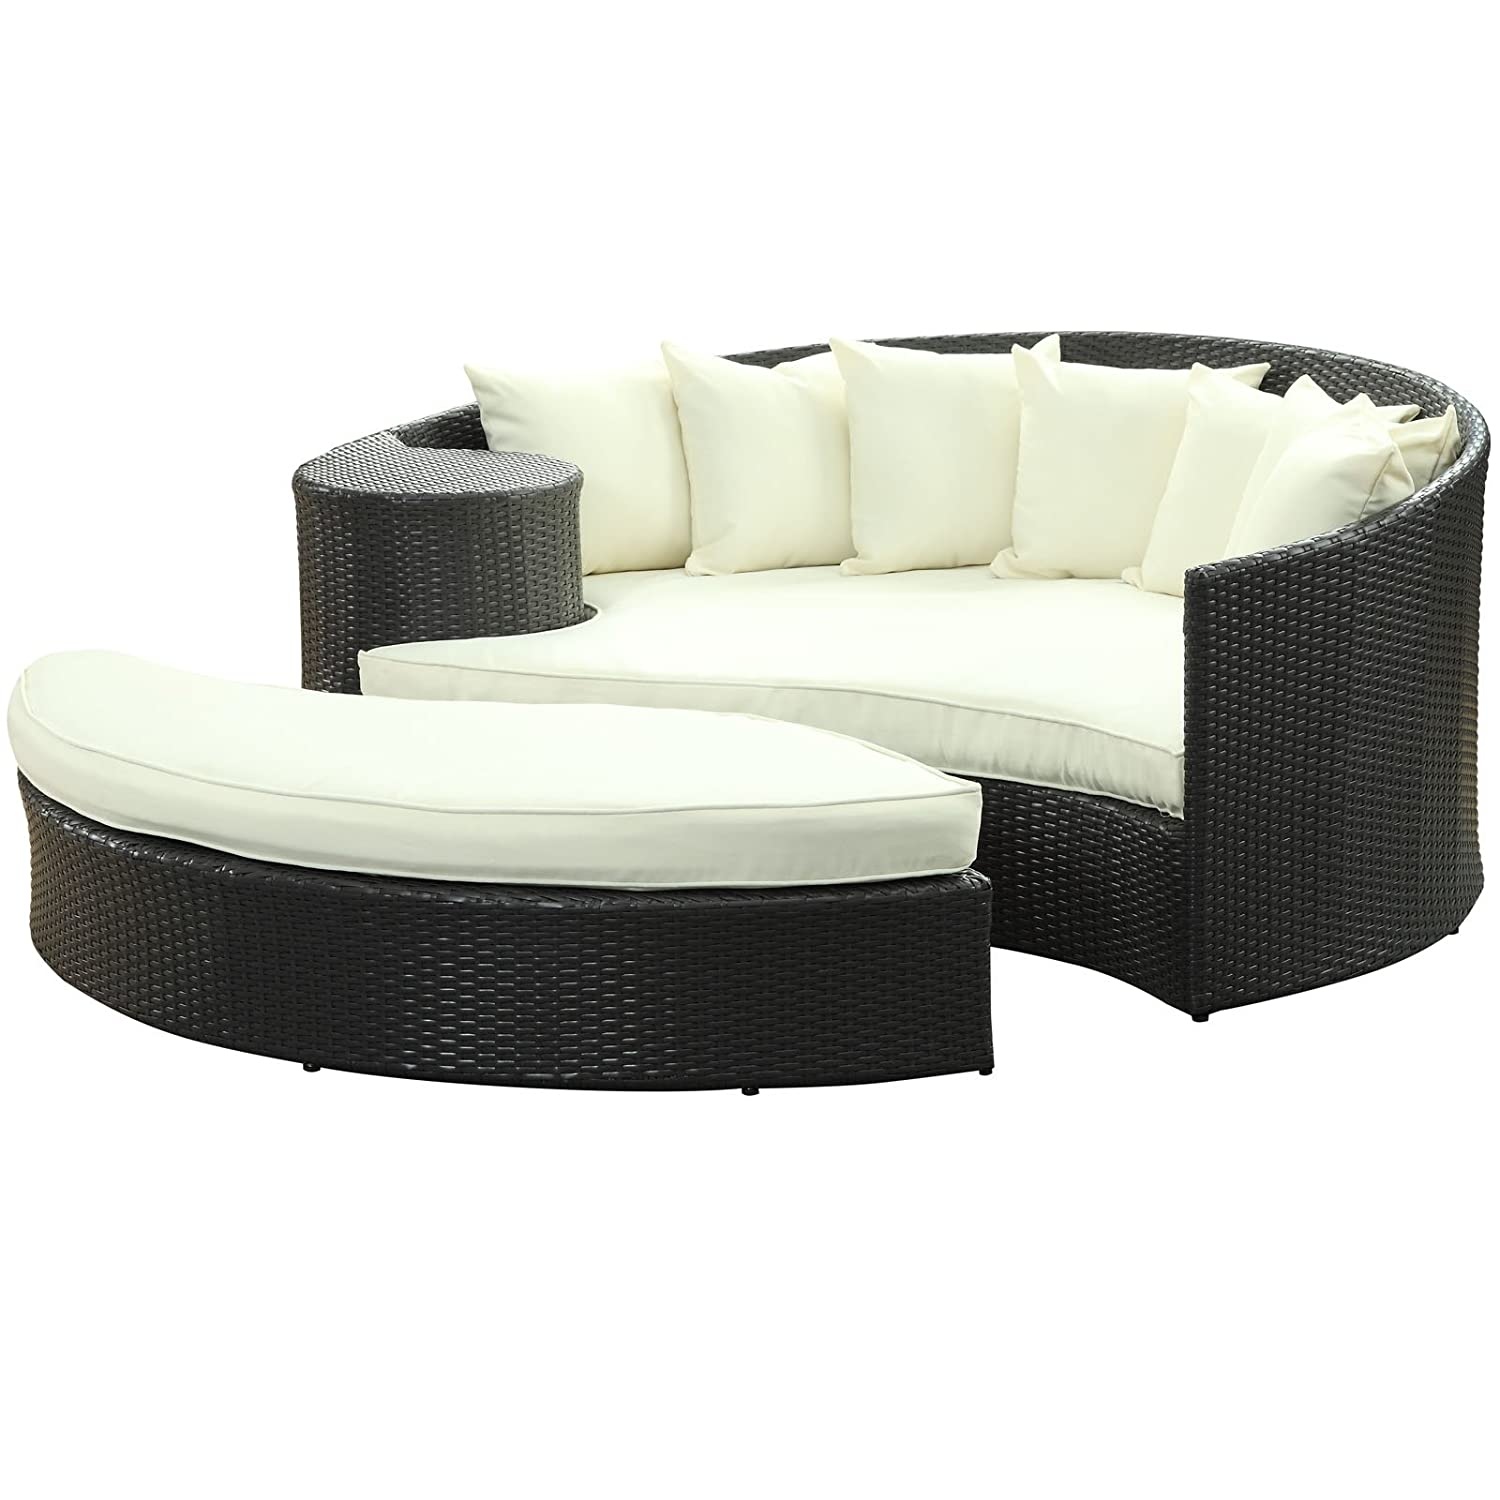 Amazon.com : LexMod Taiji Outdoor Patio Daybed In Espresso White : Patio  Sofas : Patio, Lawn U0026 Garden